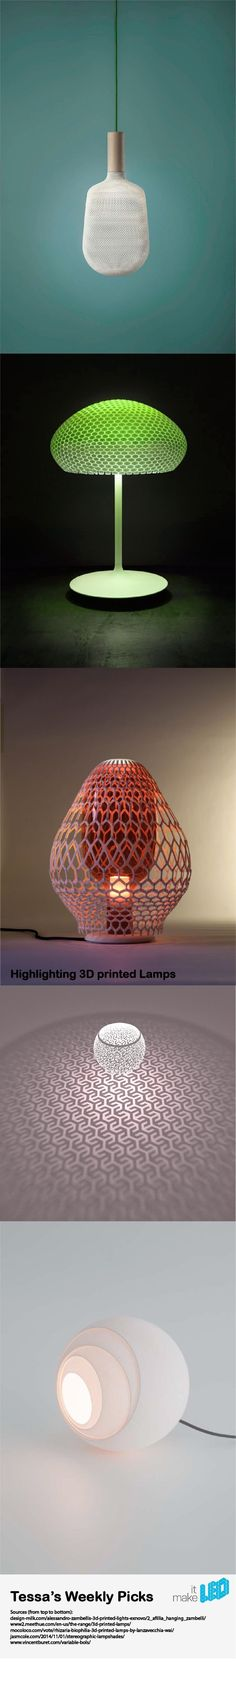 Light it up. Highlighting 3D Printed Lamps | Tessa's Weekly Picks